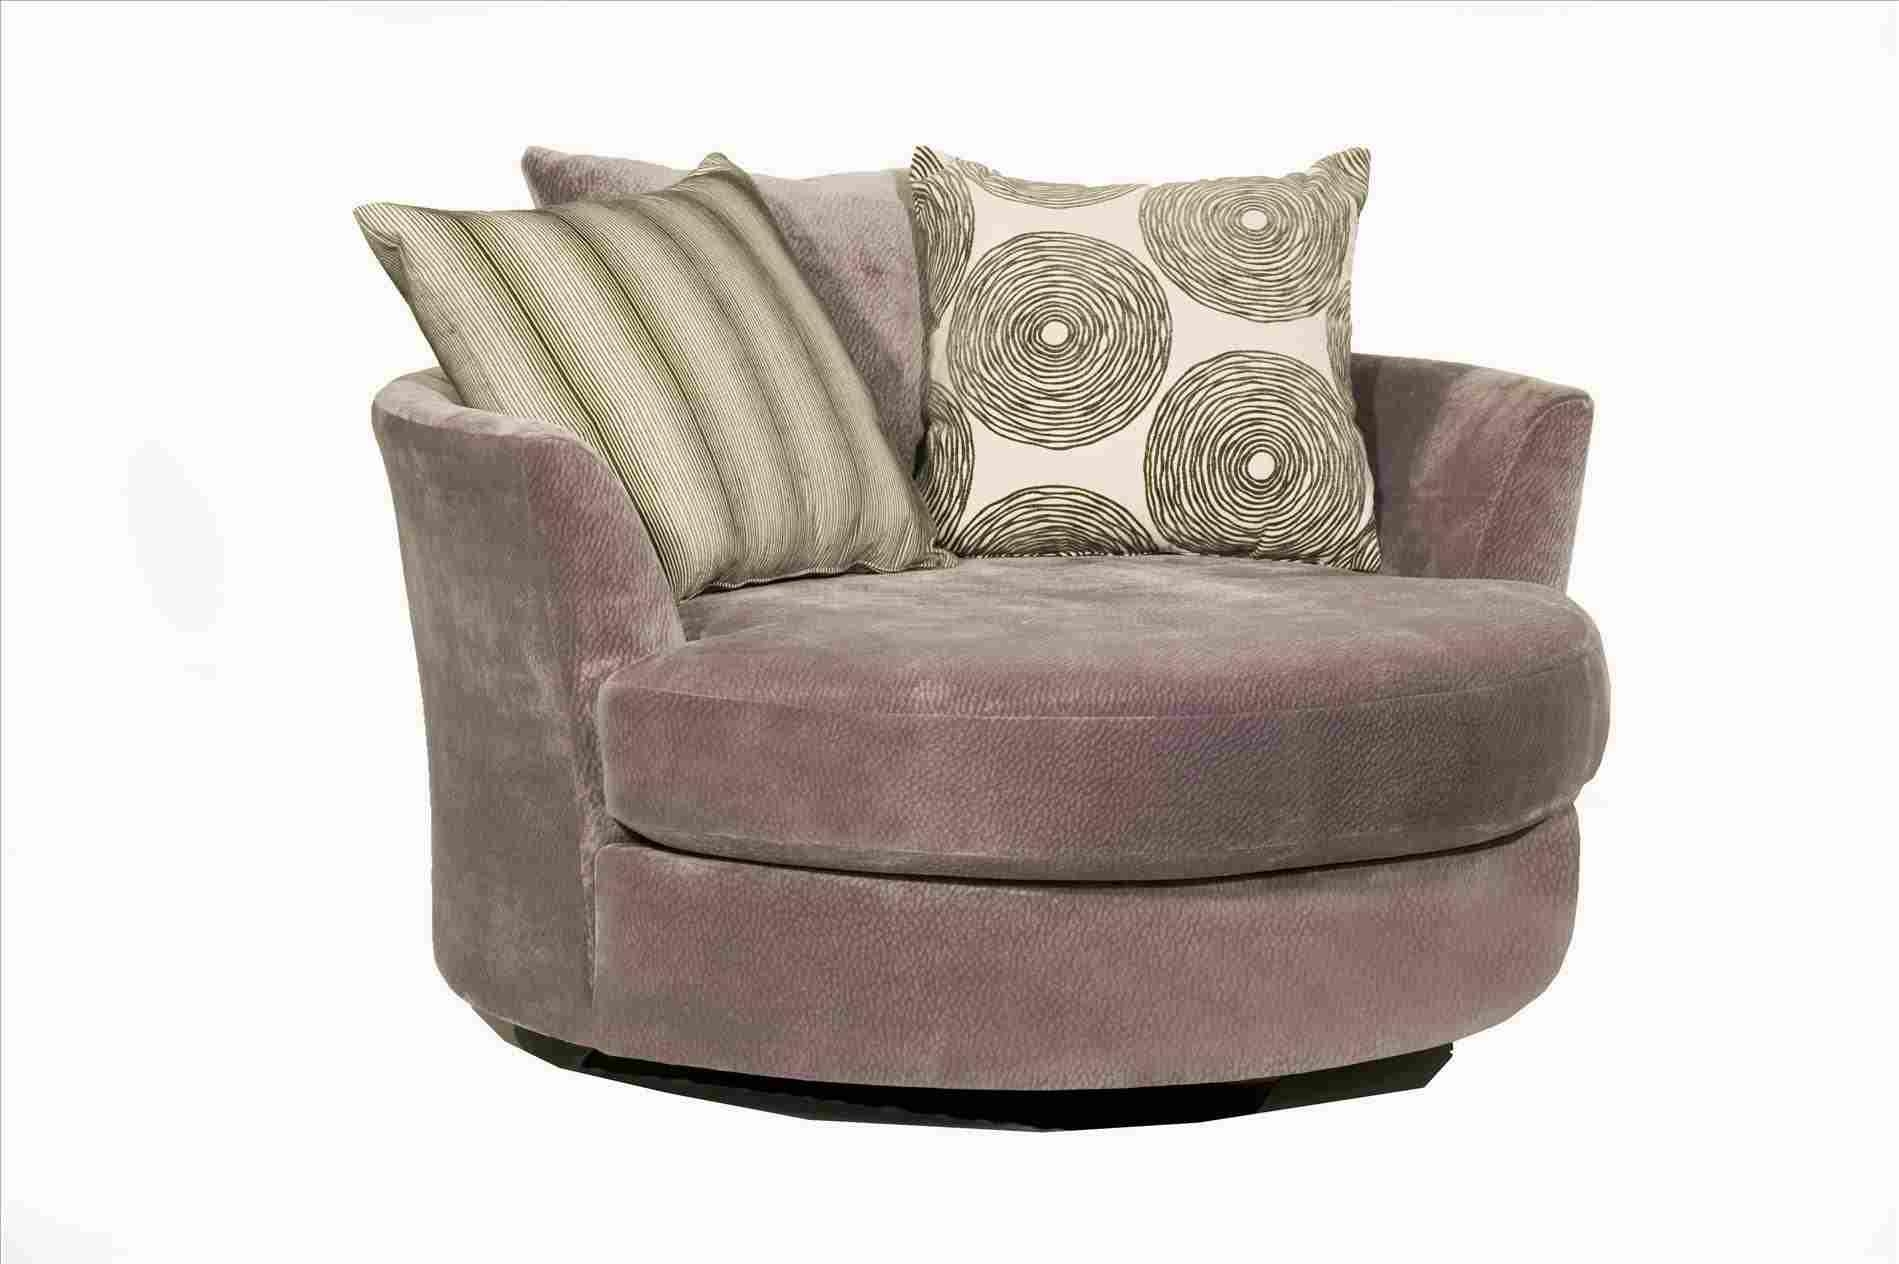 Round Swivel Cuddle Chair Intended For Cuddler Swivel Sofa Chairs (Image 12 of 20)